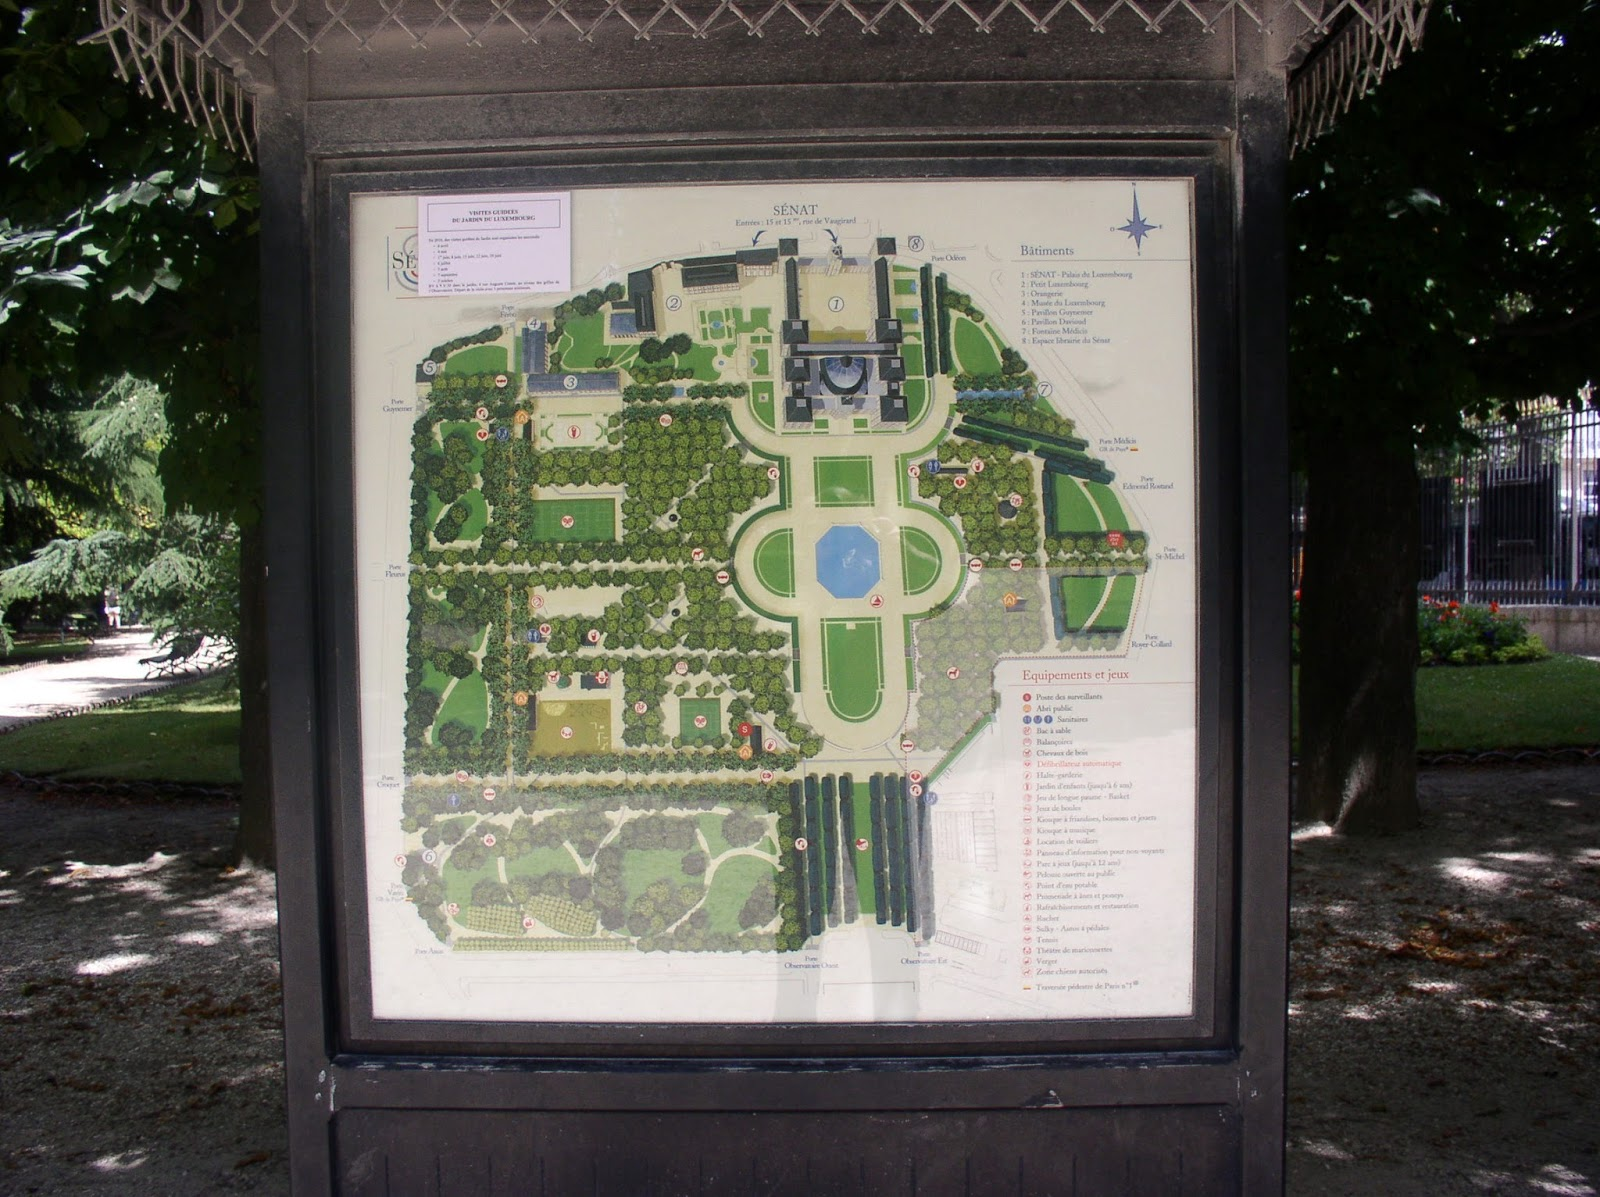 Map Of Paris France 6th Arrondissement.From Paris With Love The Luxembourg Garden